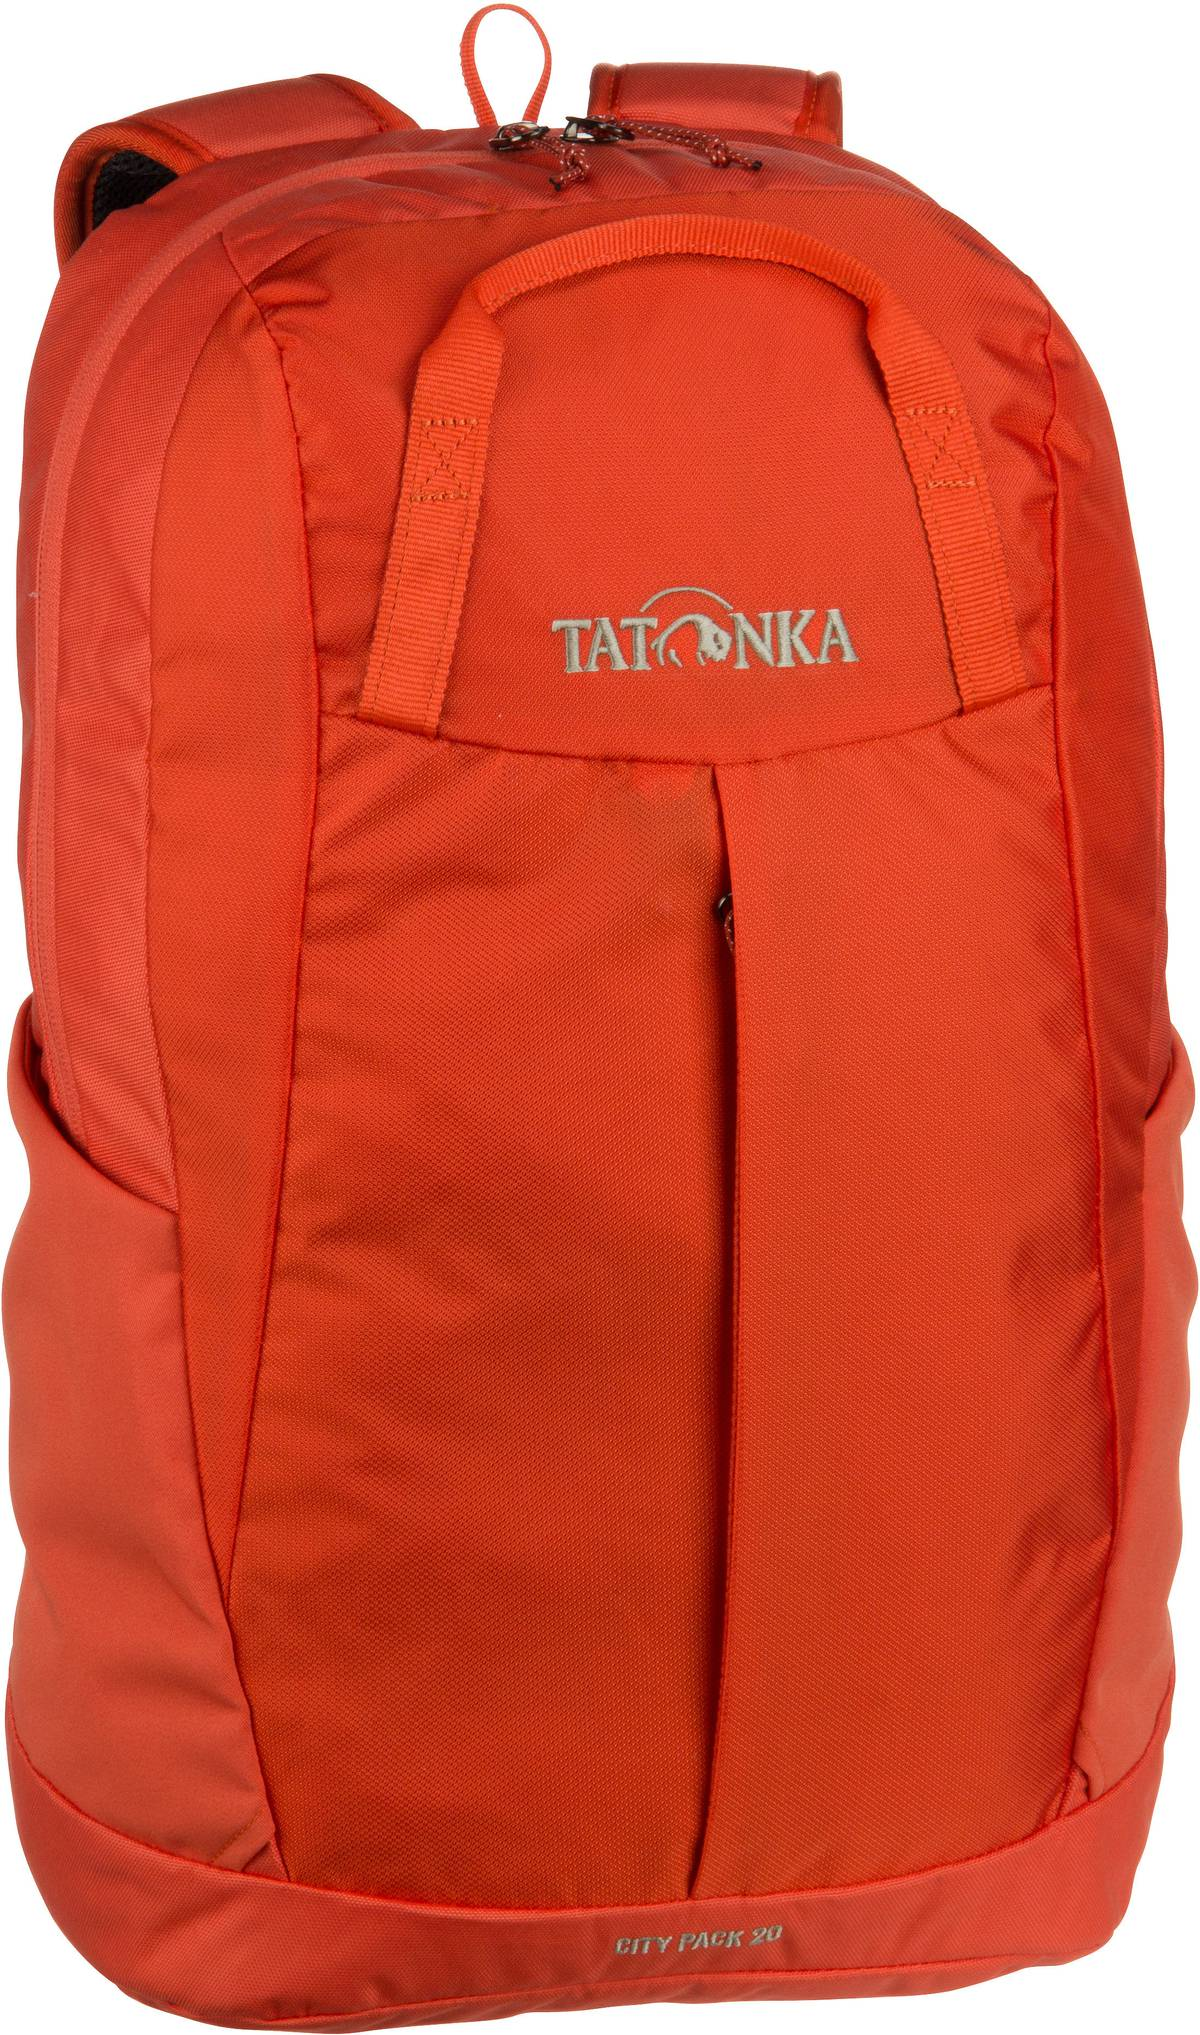 Rucksack / Daypack City Pack 20 Red Orange (20 Liter)